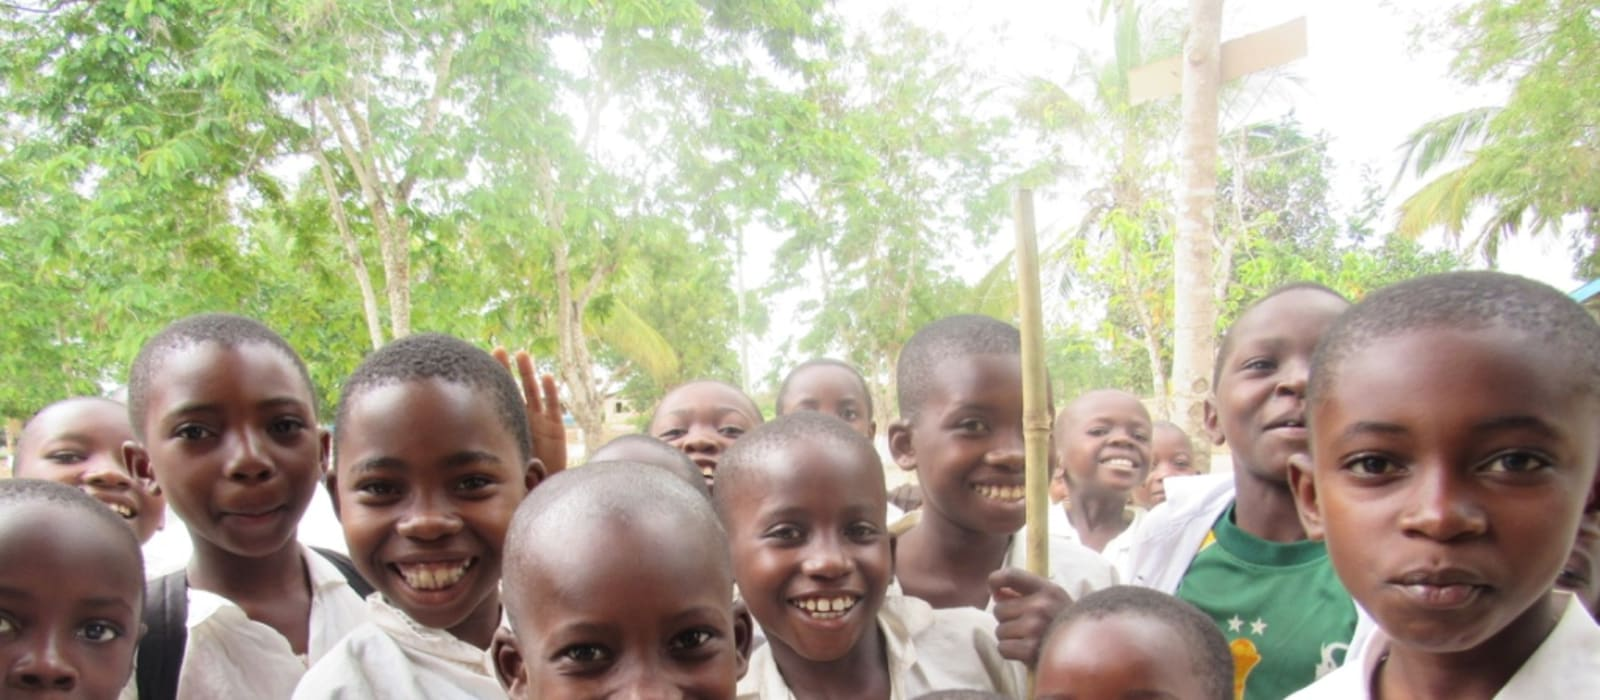 A group of children smiling in Tanzania